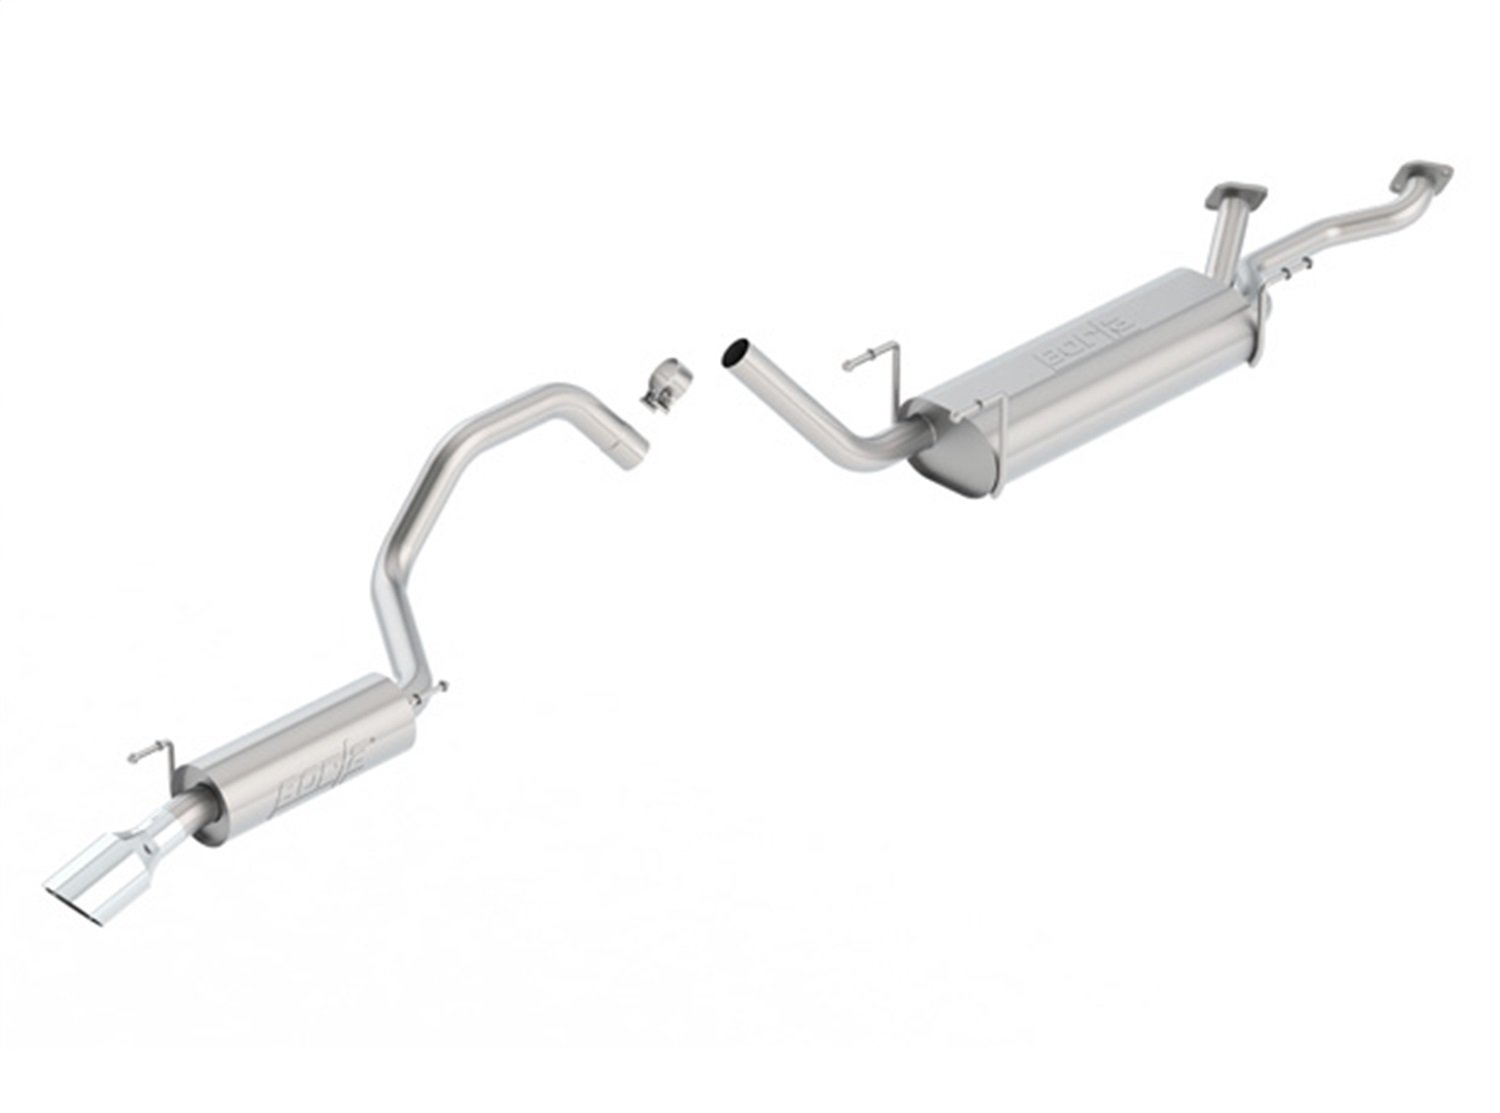 Borla 14814 Stainless Steel Cat-Back Exhaust System 60%OFF